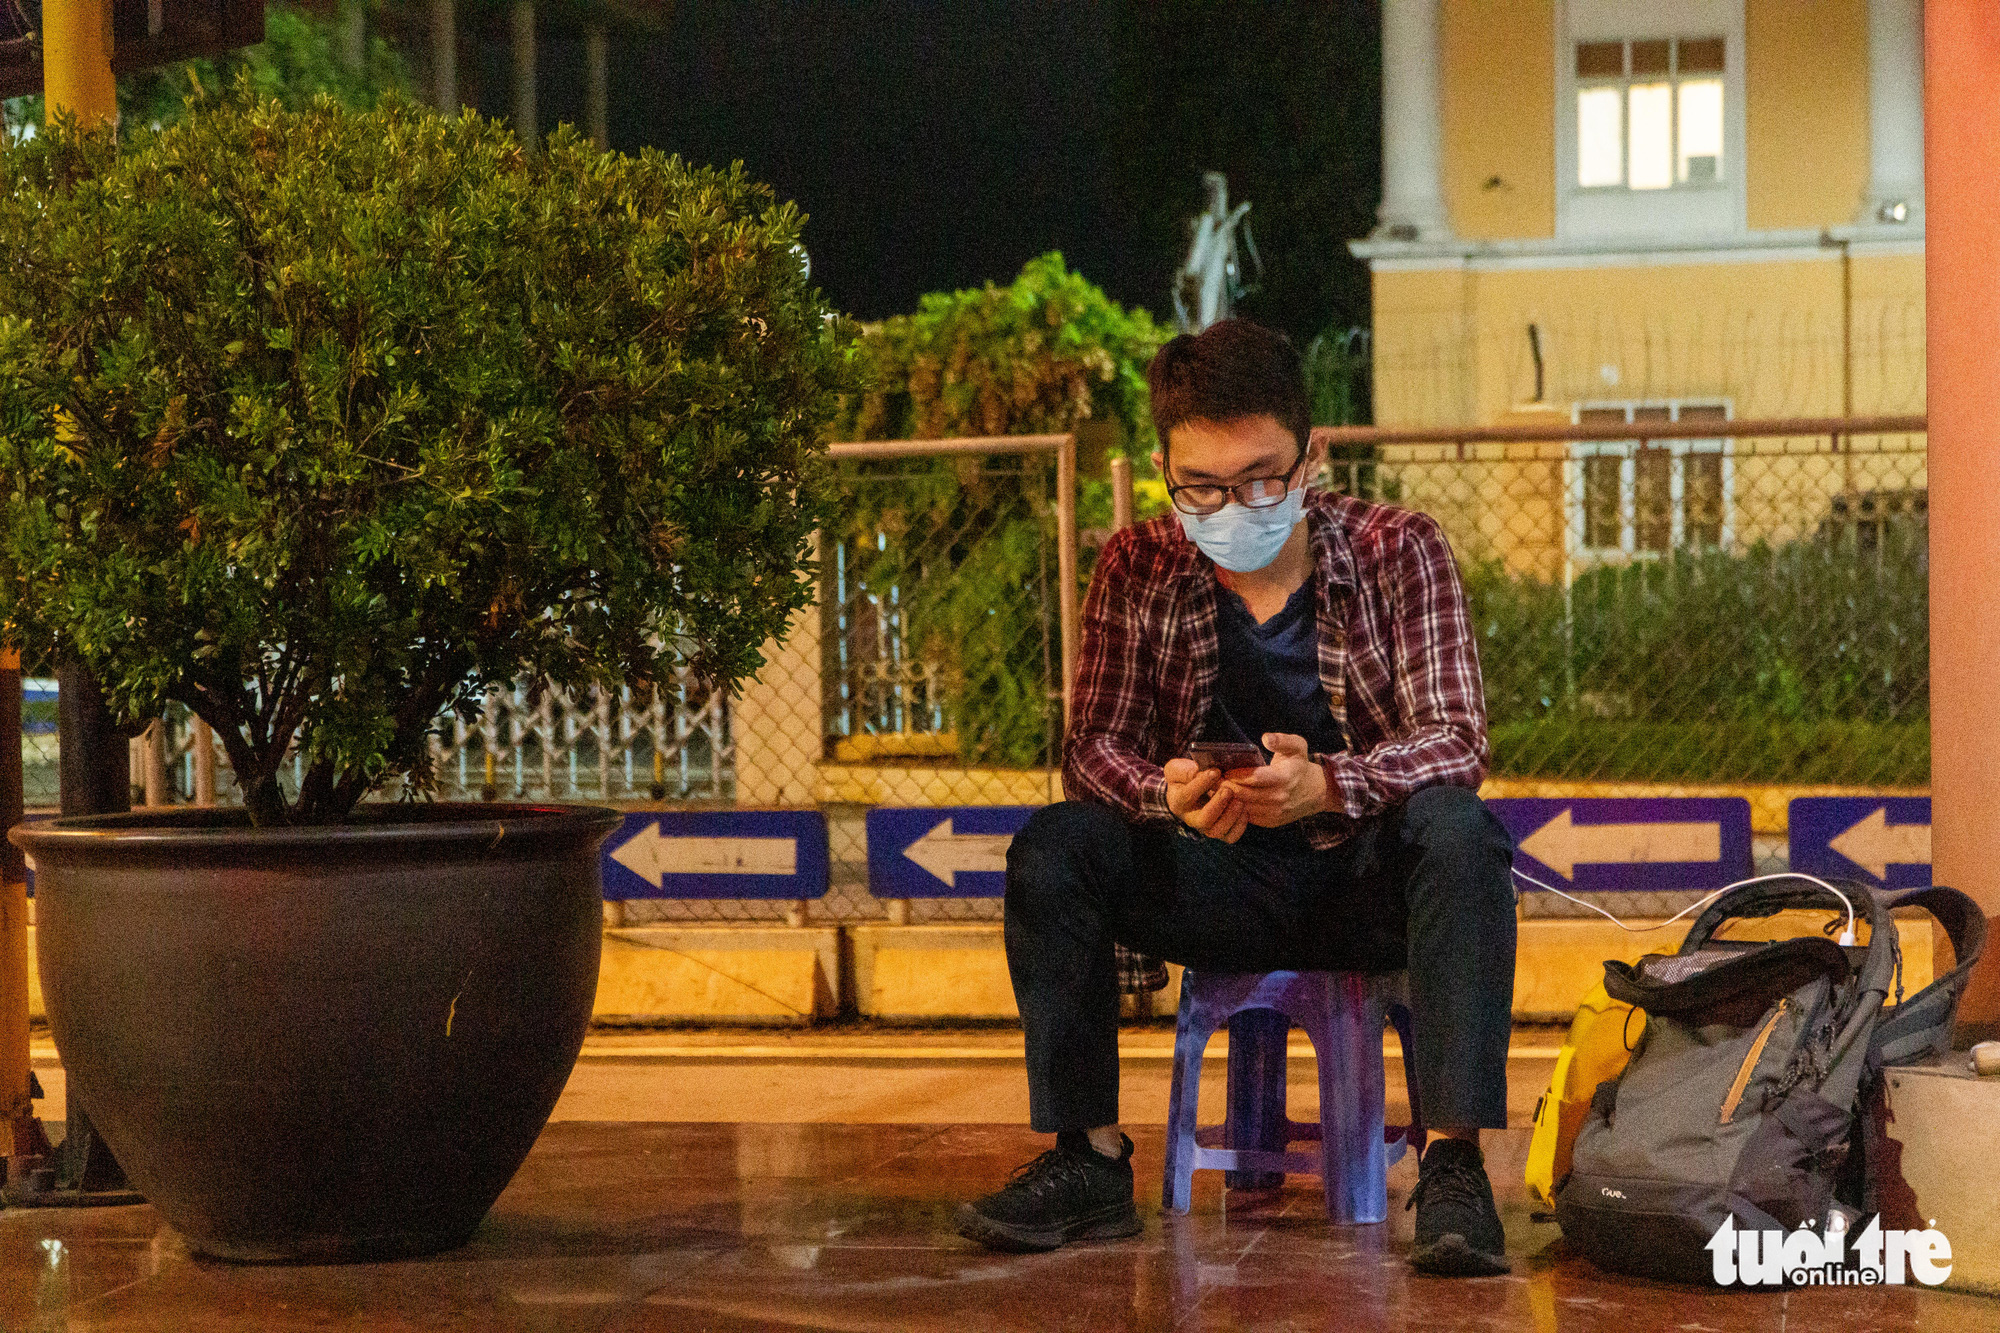 Trinh Van Duong, 25, from Thanh Hoa Province, waits for a ride home at a medical checkpoint on Phap Van - Cau Gie Expressway in Hanoi, July 24, 2021. Photo: Pham Tuan / Tuoi Tre